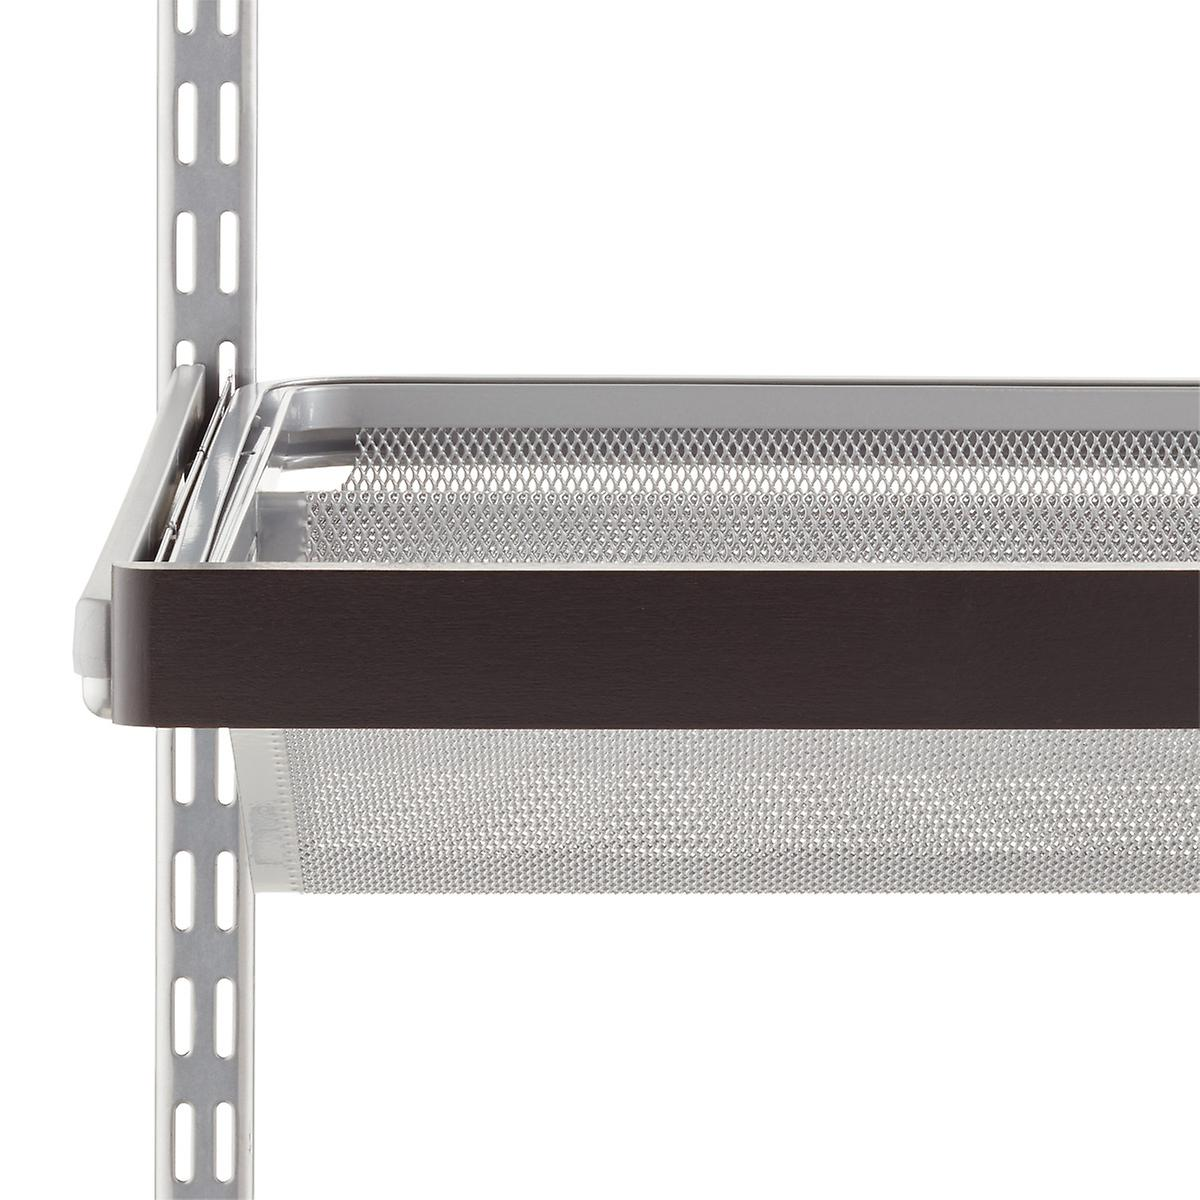 Walnut Elfa Décor Gliding Shelf Fascia